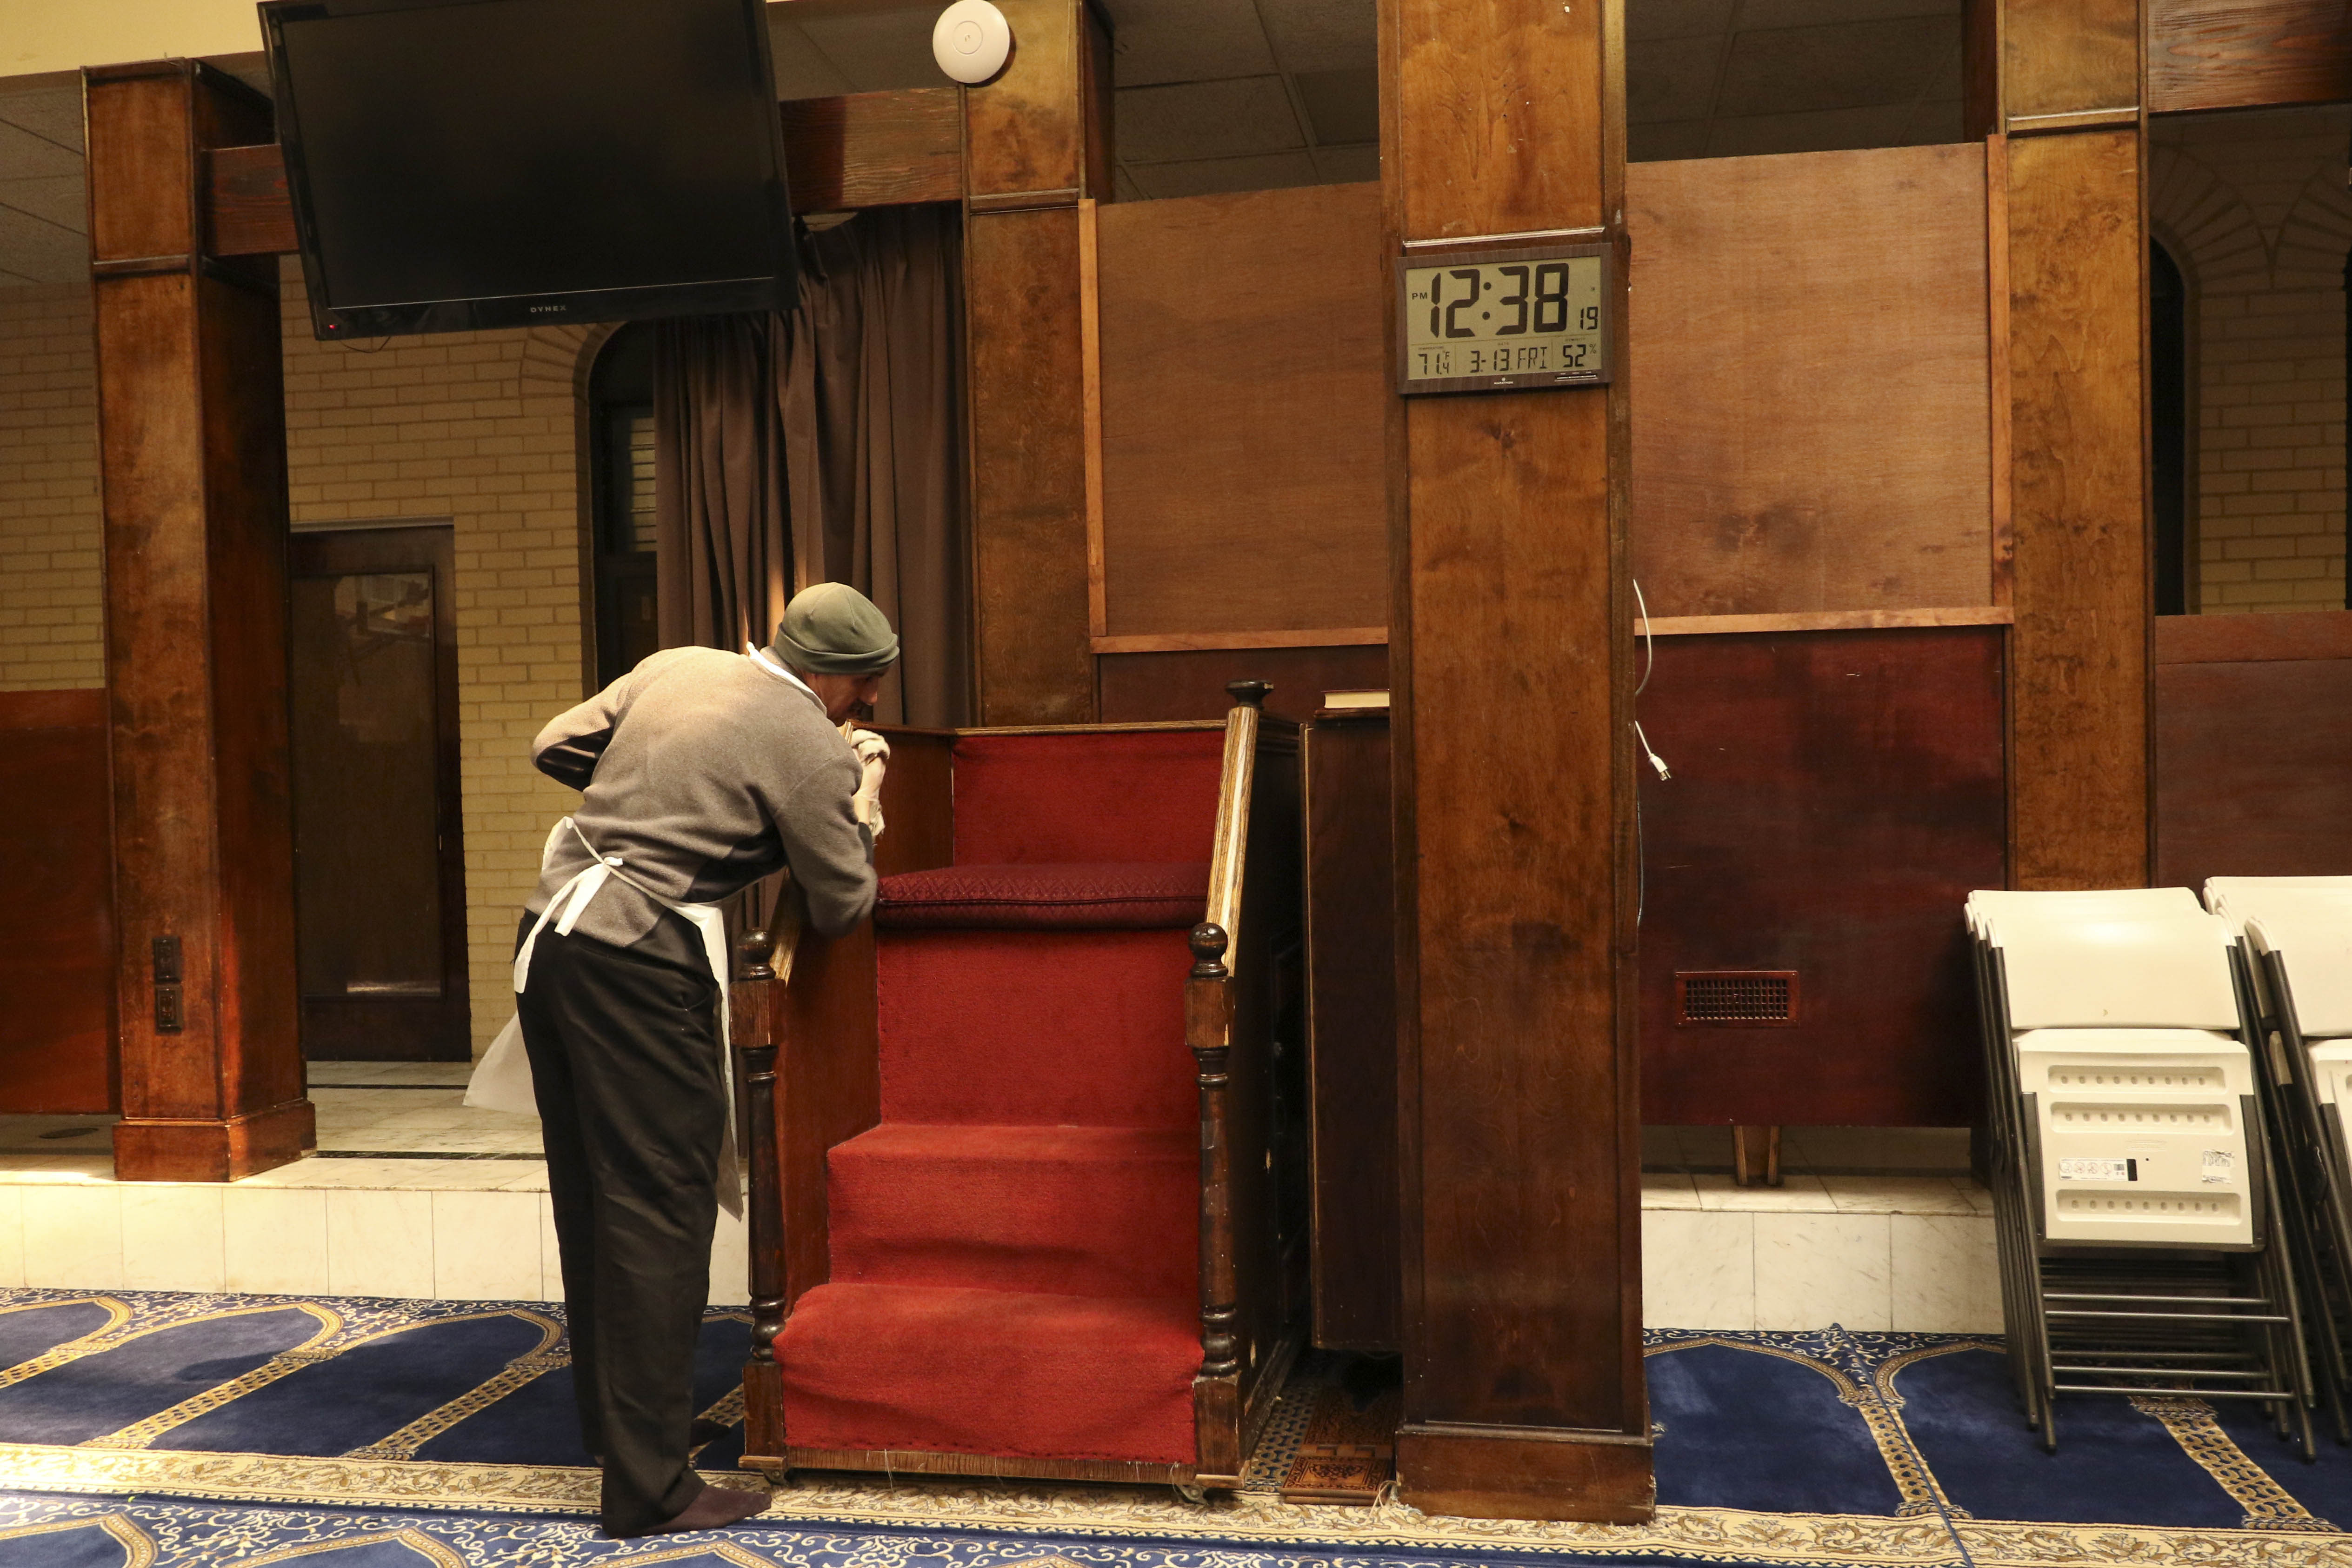 A man is cleaning the inside of the mosque.